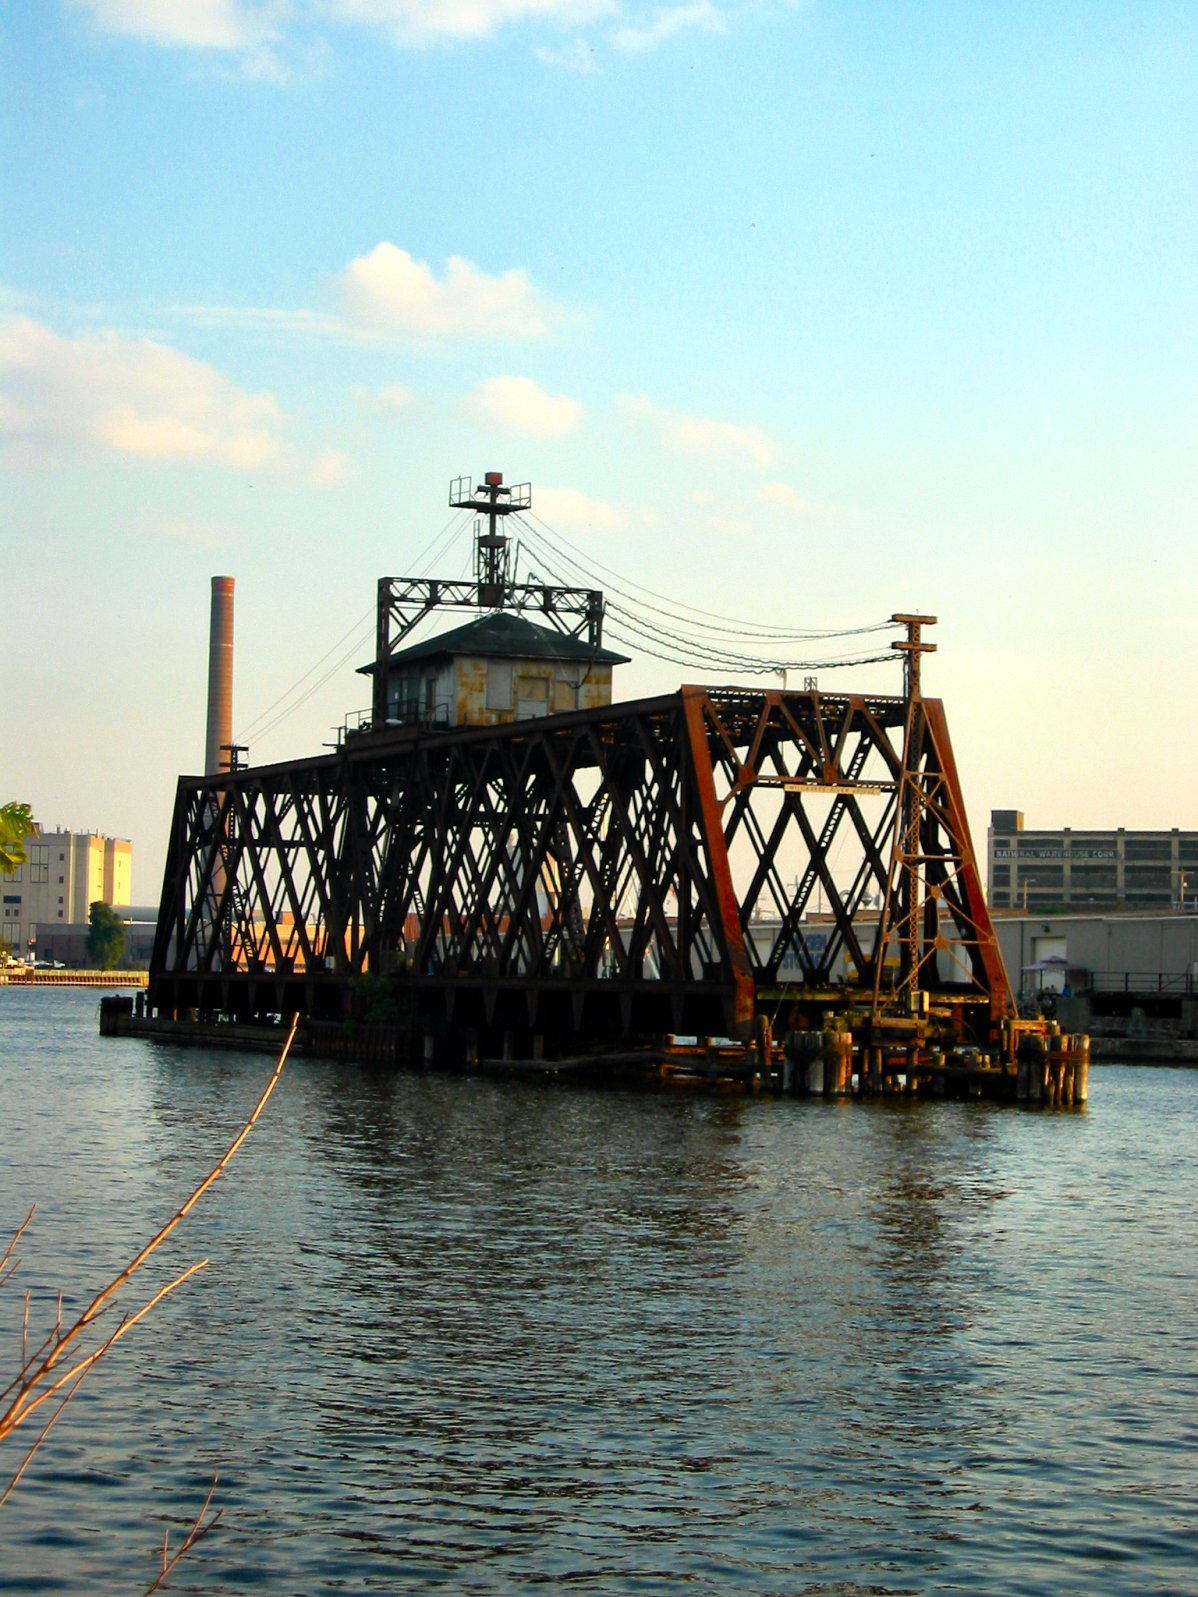 Drawbridges on Milwaukee River in the Third Ward - soul-amp.com